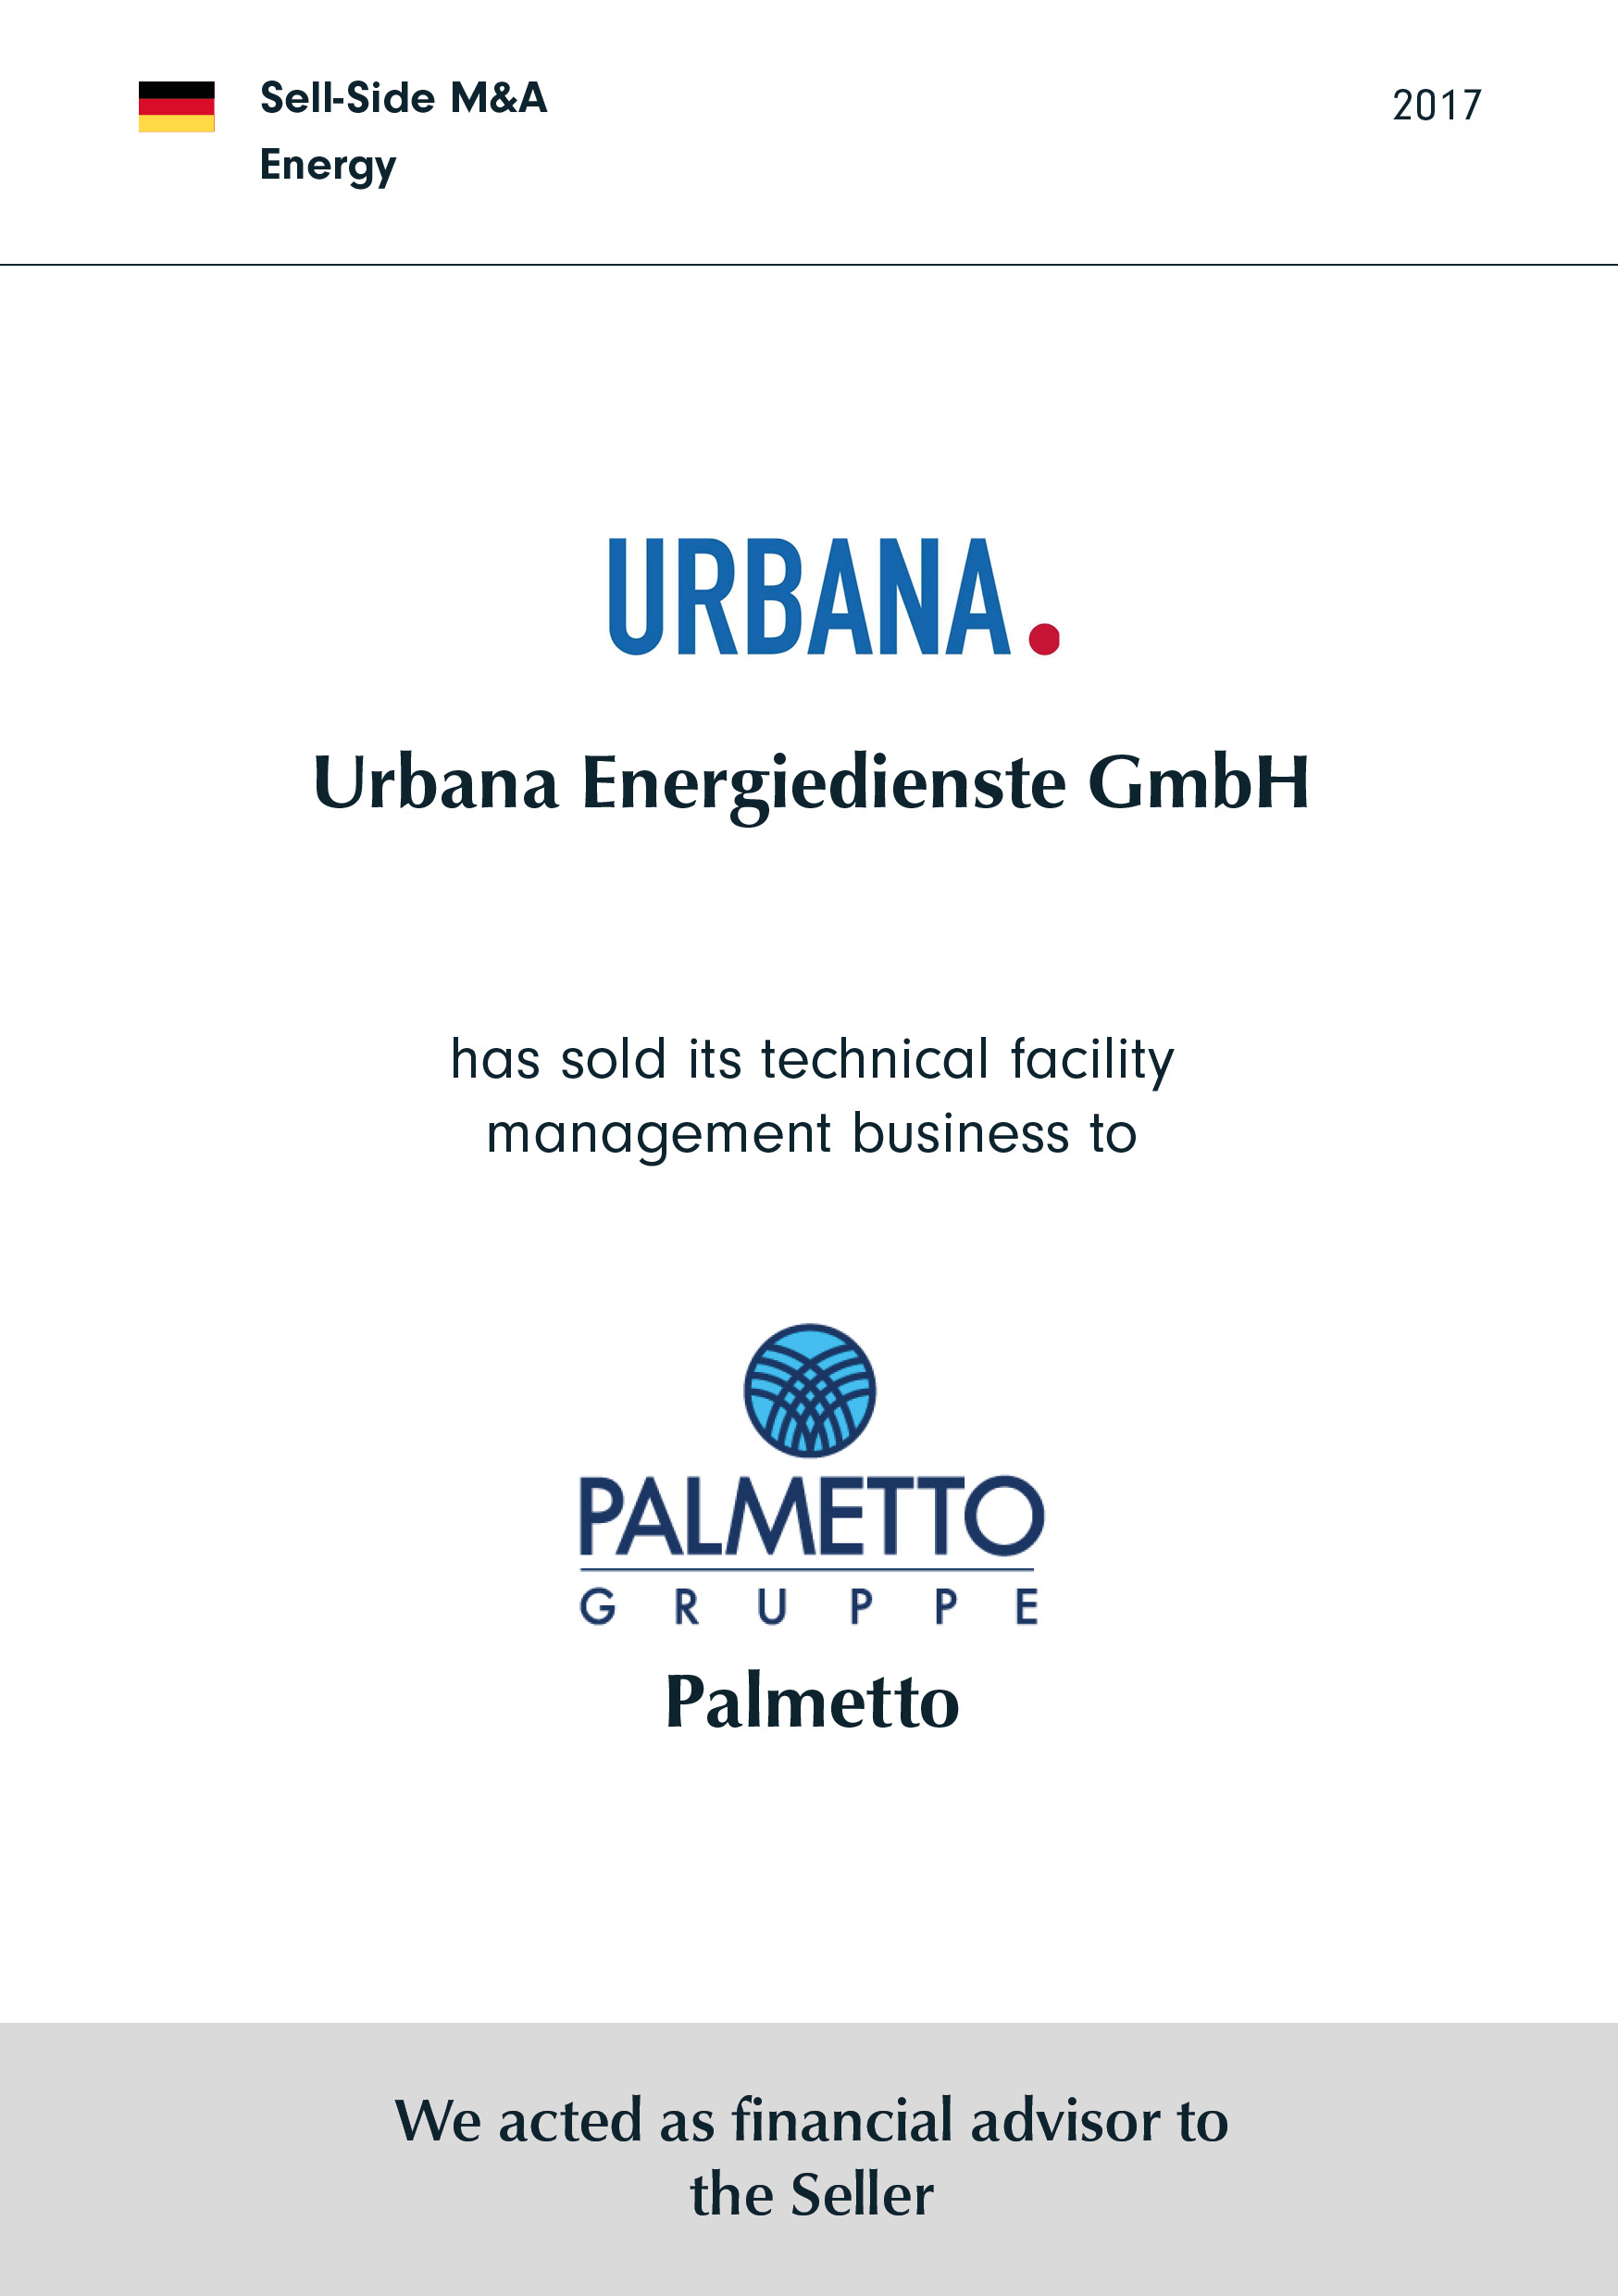 URBANA has sold its technical facility management business to Palmetto